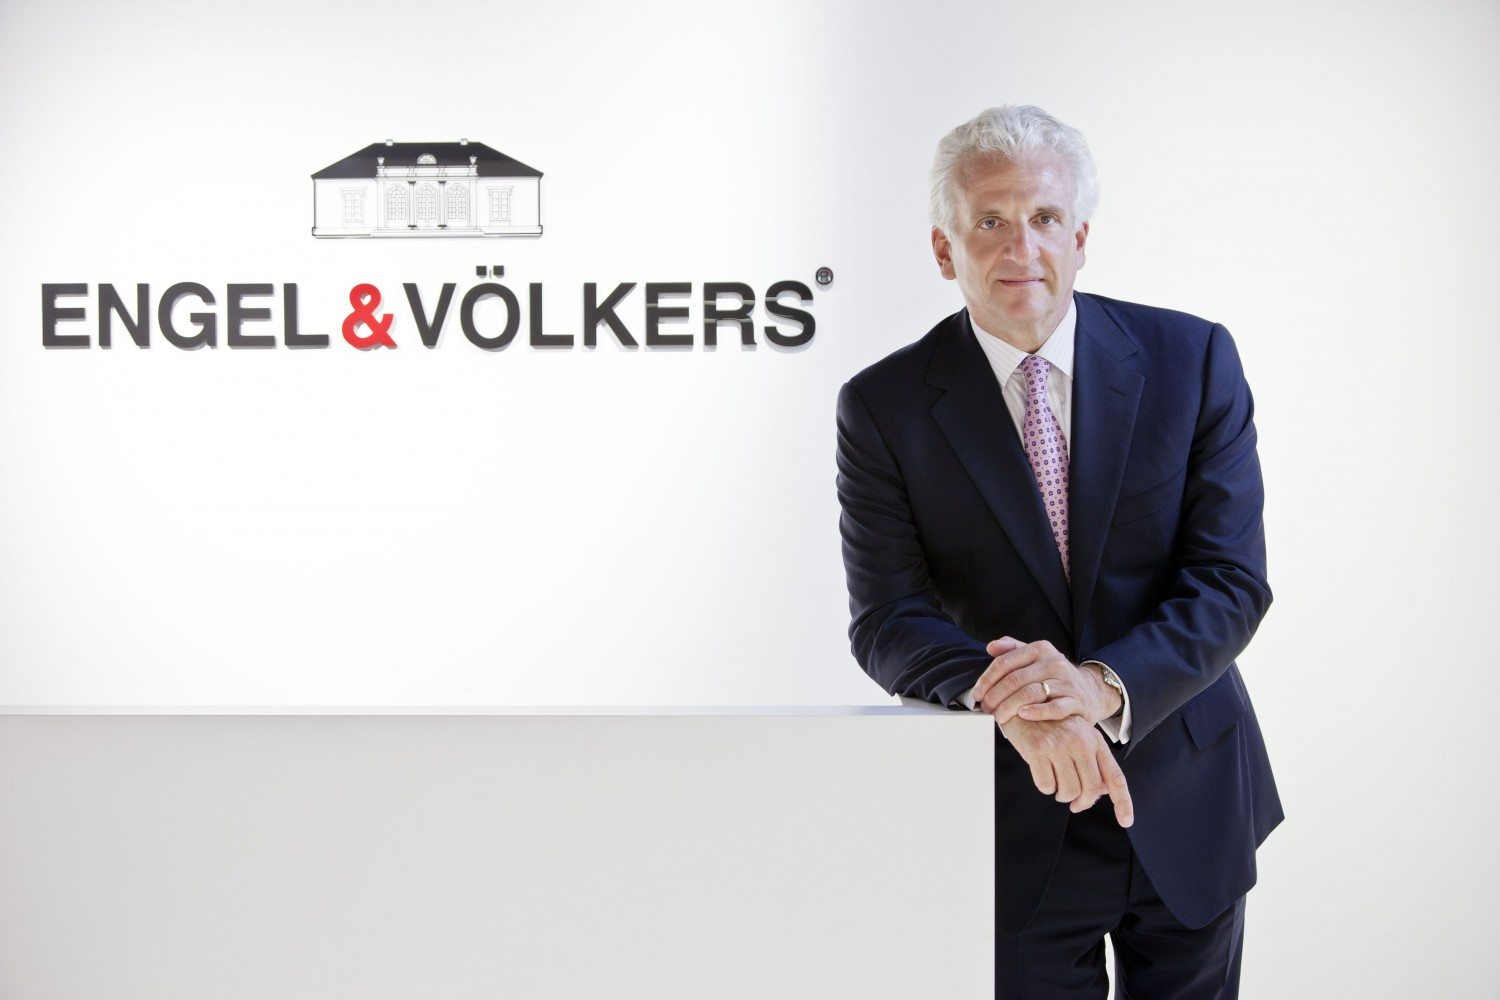 Engel v lkers nyc 39 s stuart siegel talks brexit local for Engel and volkers nyc